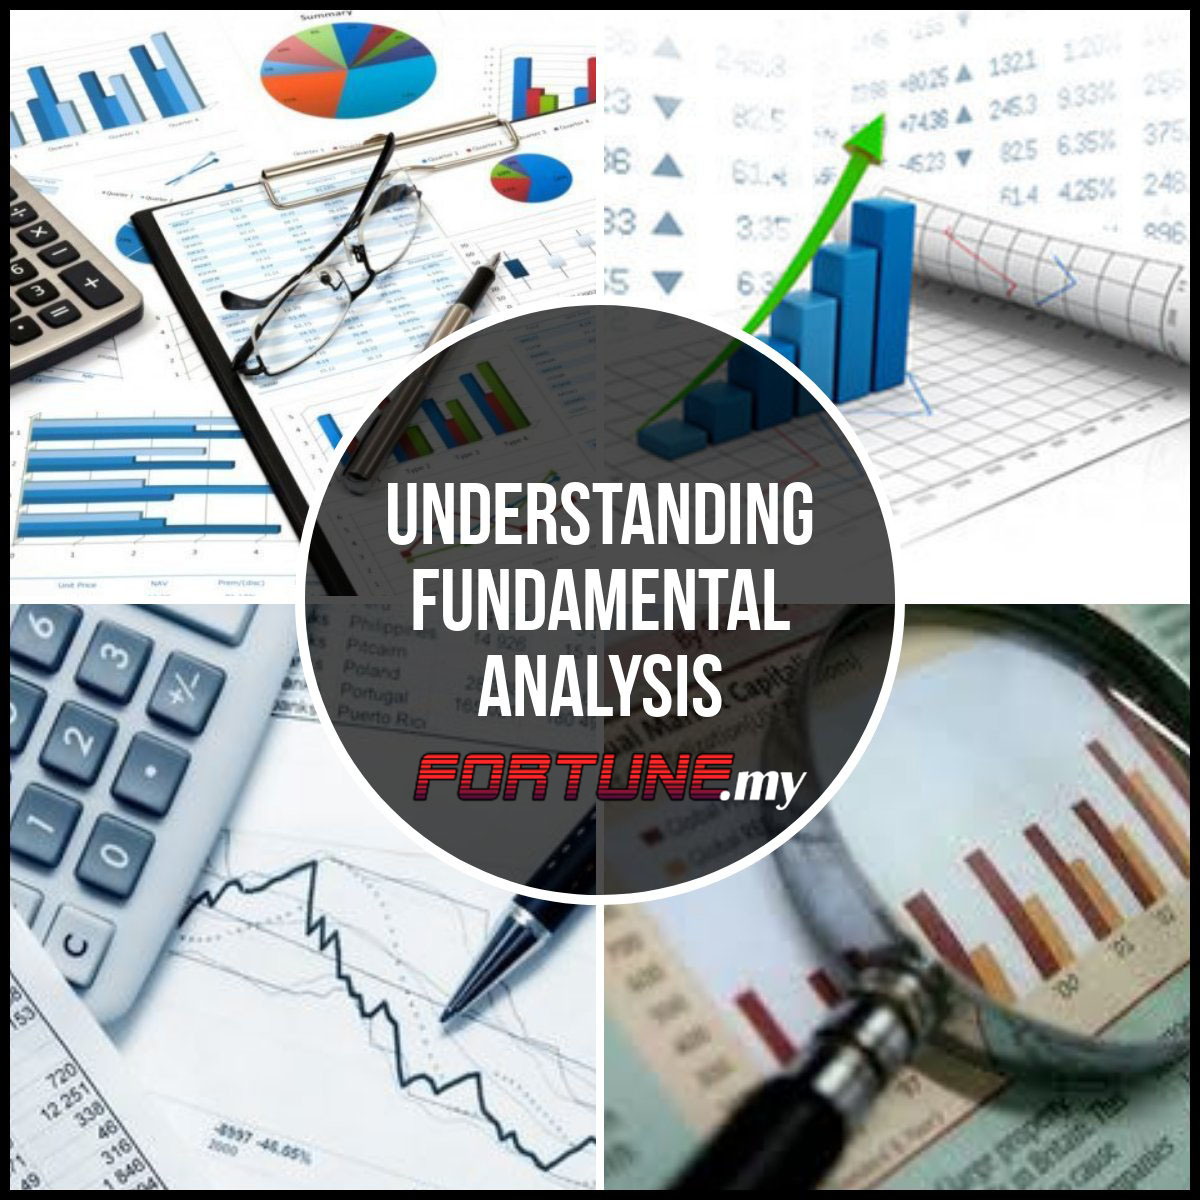 Understanding fundamental analysis